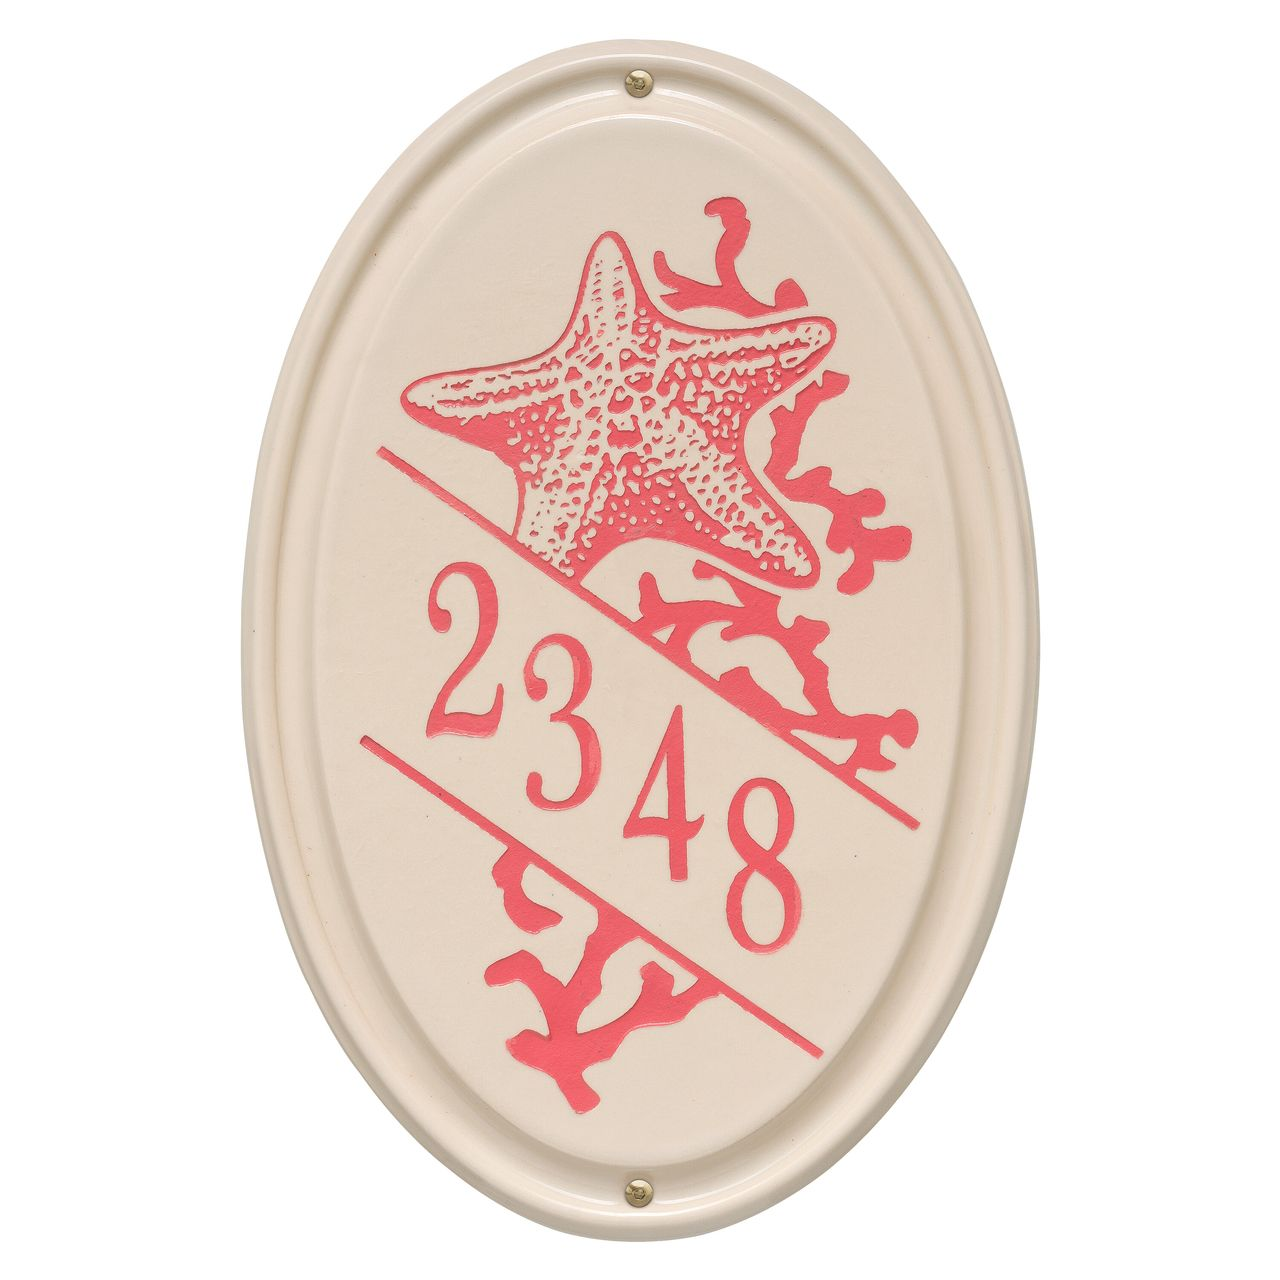 Personalized Oval Ceramic Address Plaque With Star Fish - One Line Available now at the best price only at www.everythingnautical.com  #Nautical #Home #Decor #Gifts